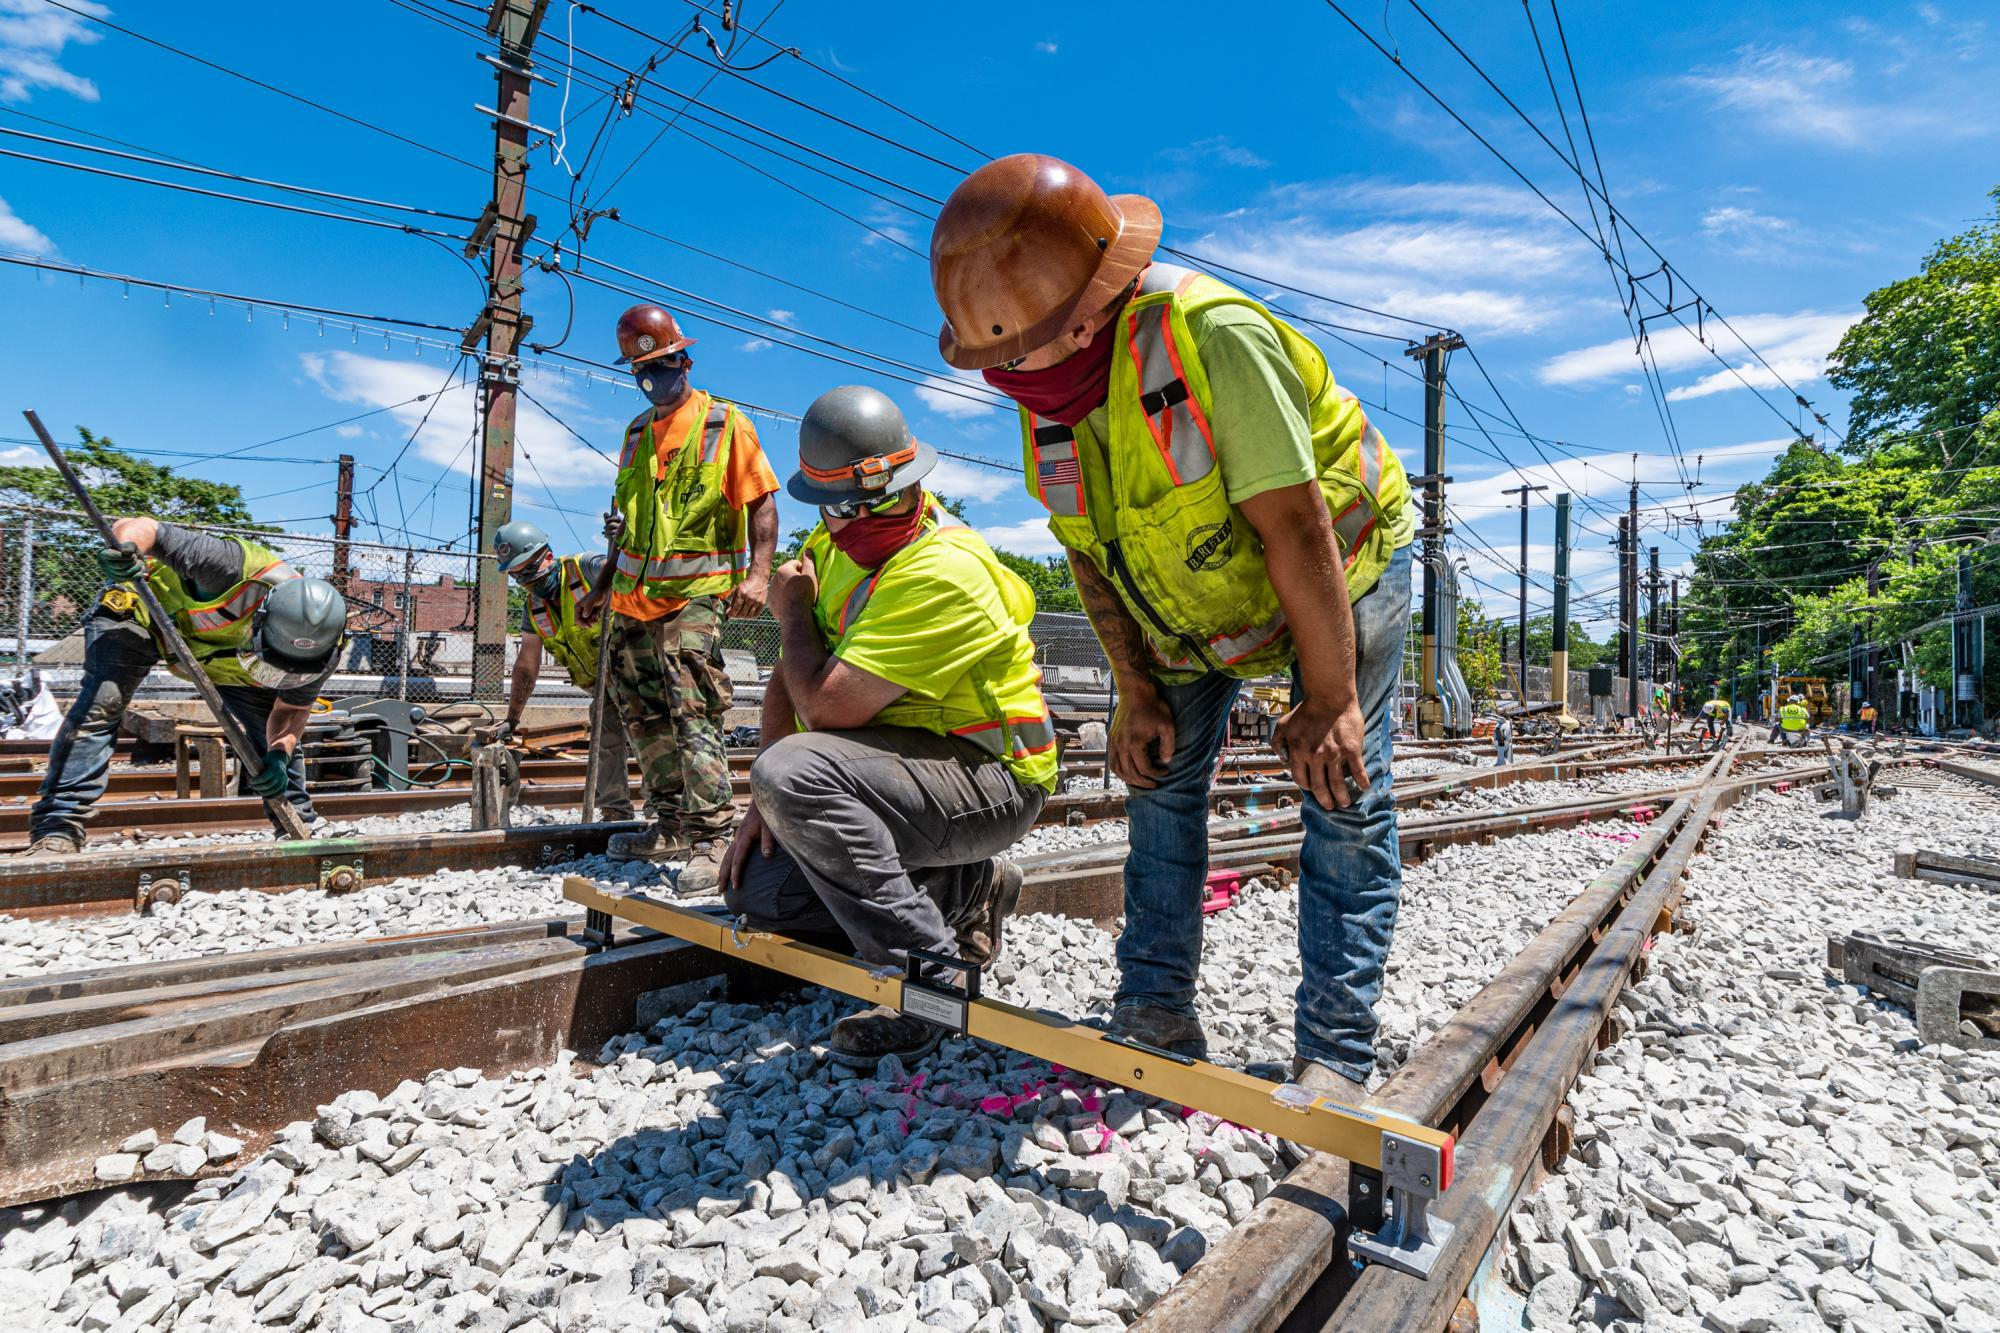 A crew aligns track and installs ballast near Reservoir Station on the Green Line D